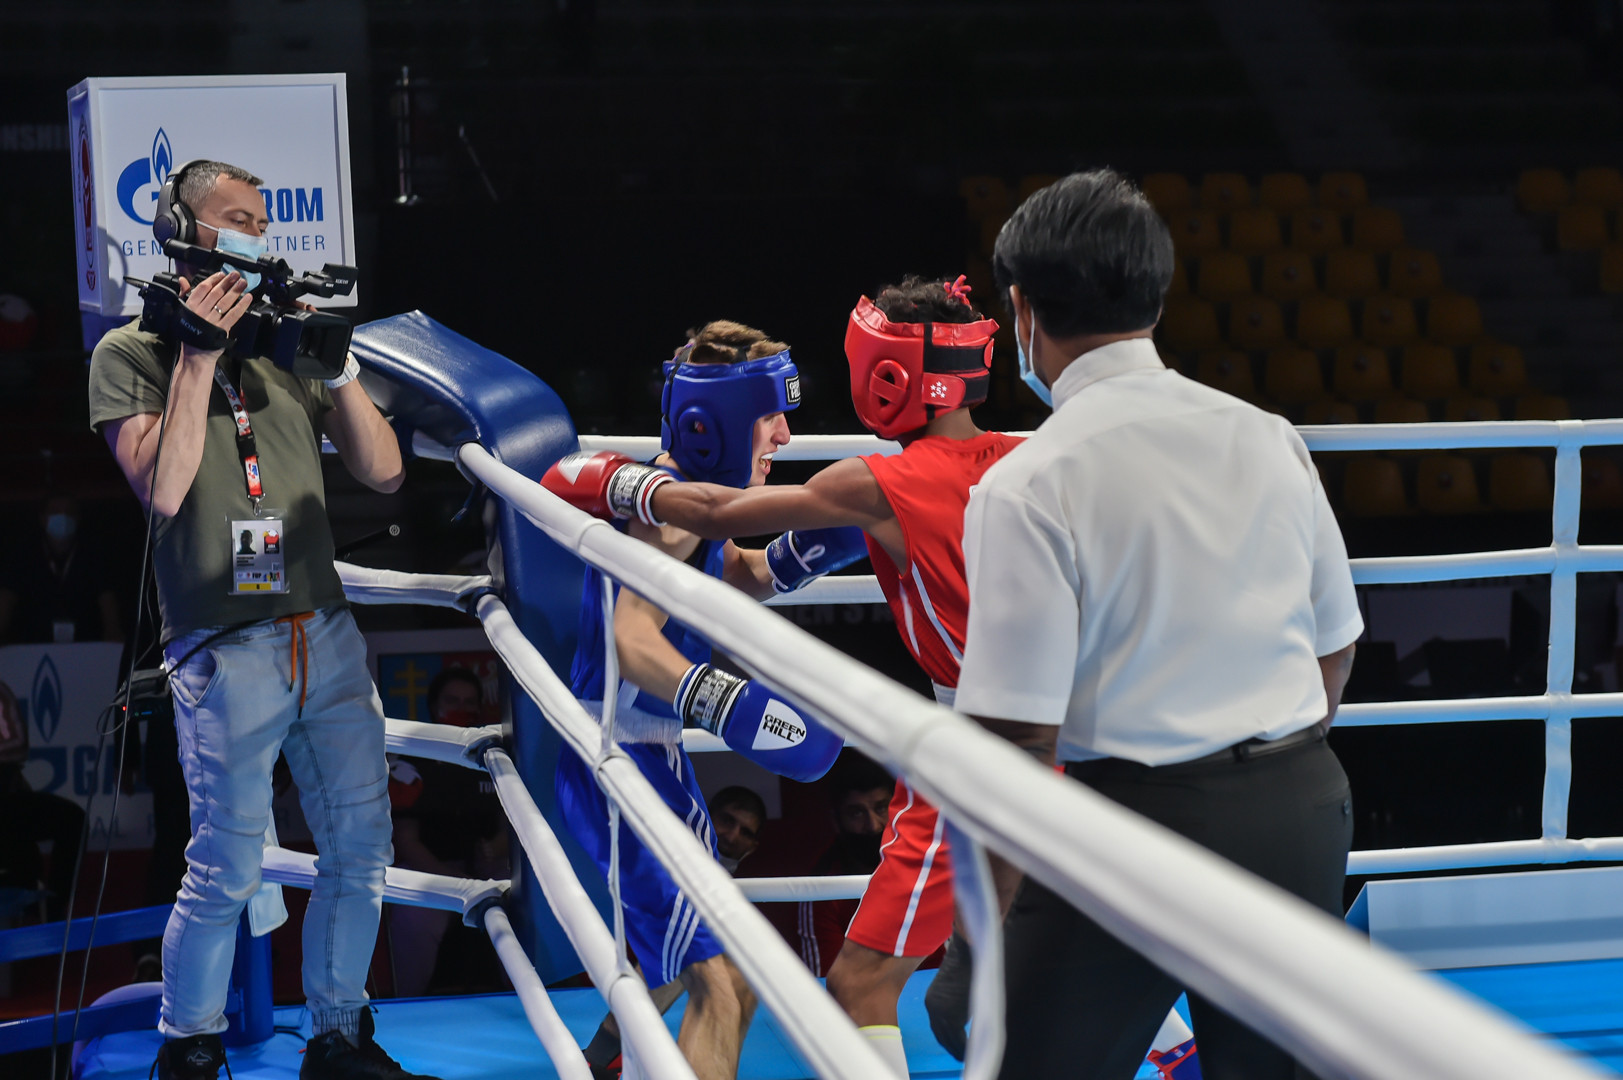 The Championships are being televised around the world ©AIBA